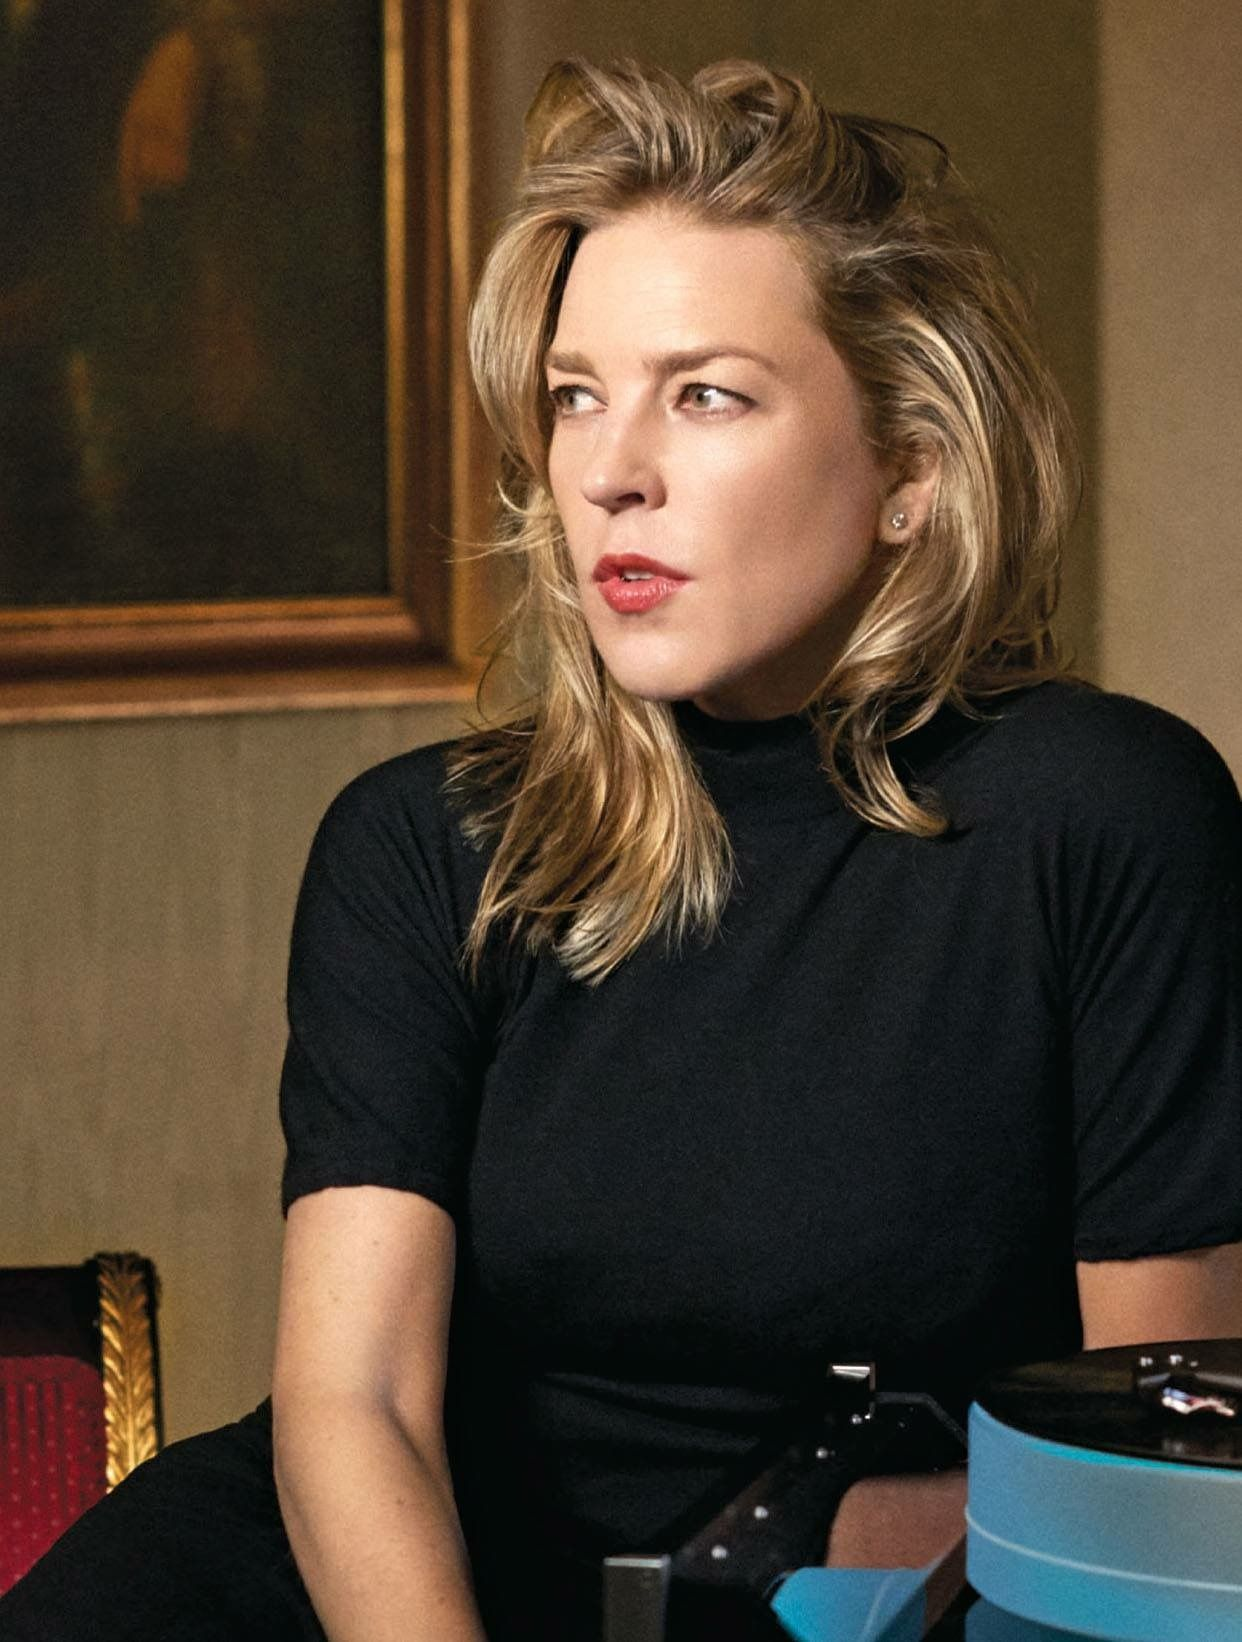 Diana jean krall born november 16 1964 is a canadian